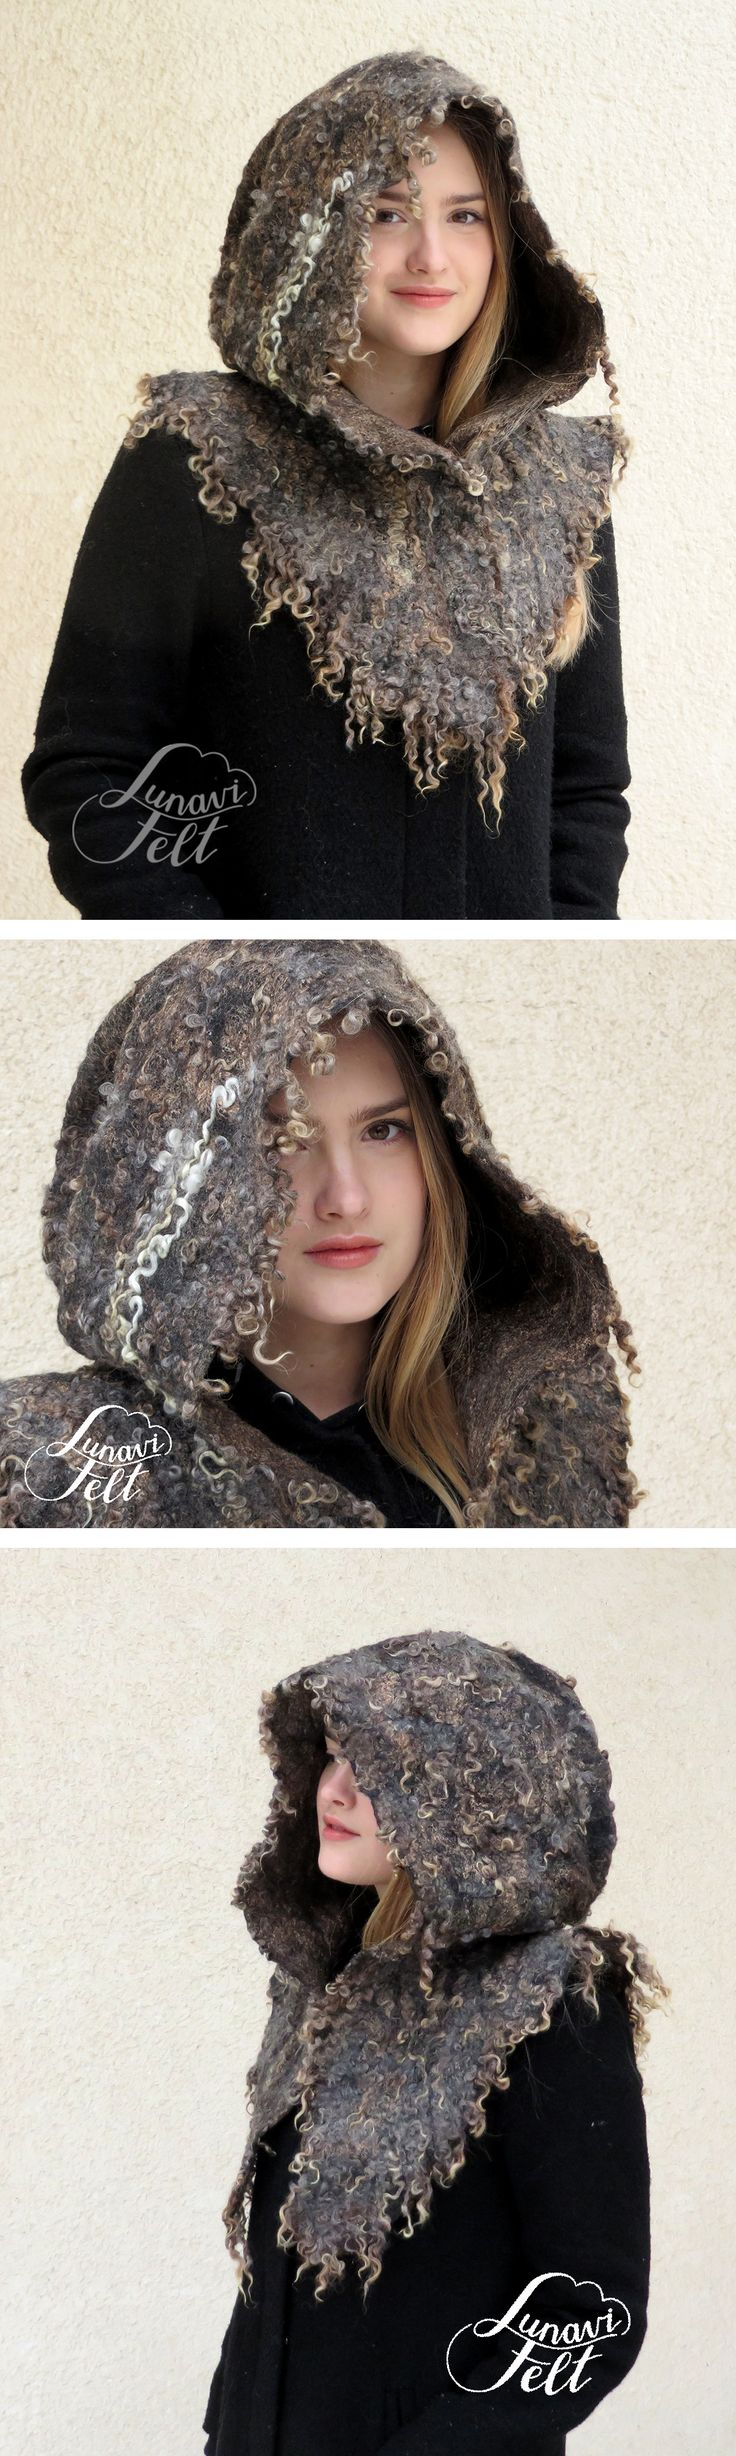 A new take on medieval hood - creating fur like texture by wet felting with raw sheep locks. Modern viking hood, Elf, festival or Druid wear Perfect protection from elements.